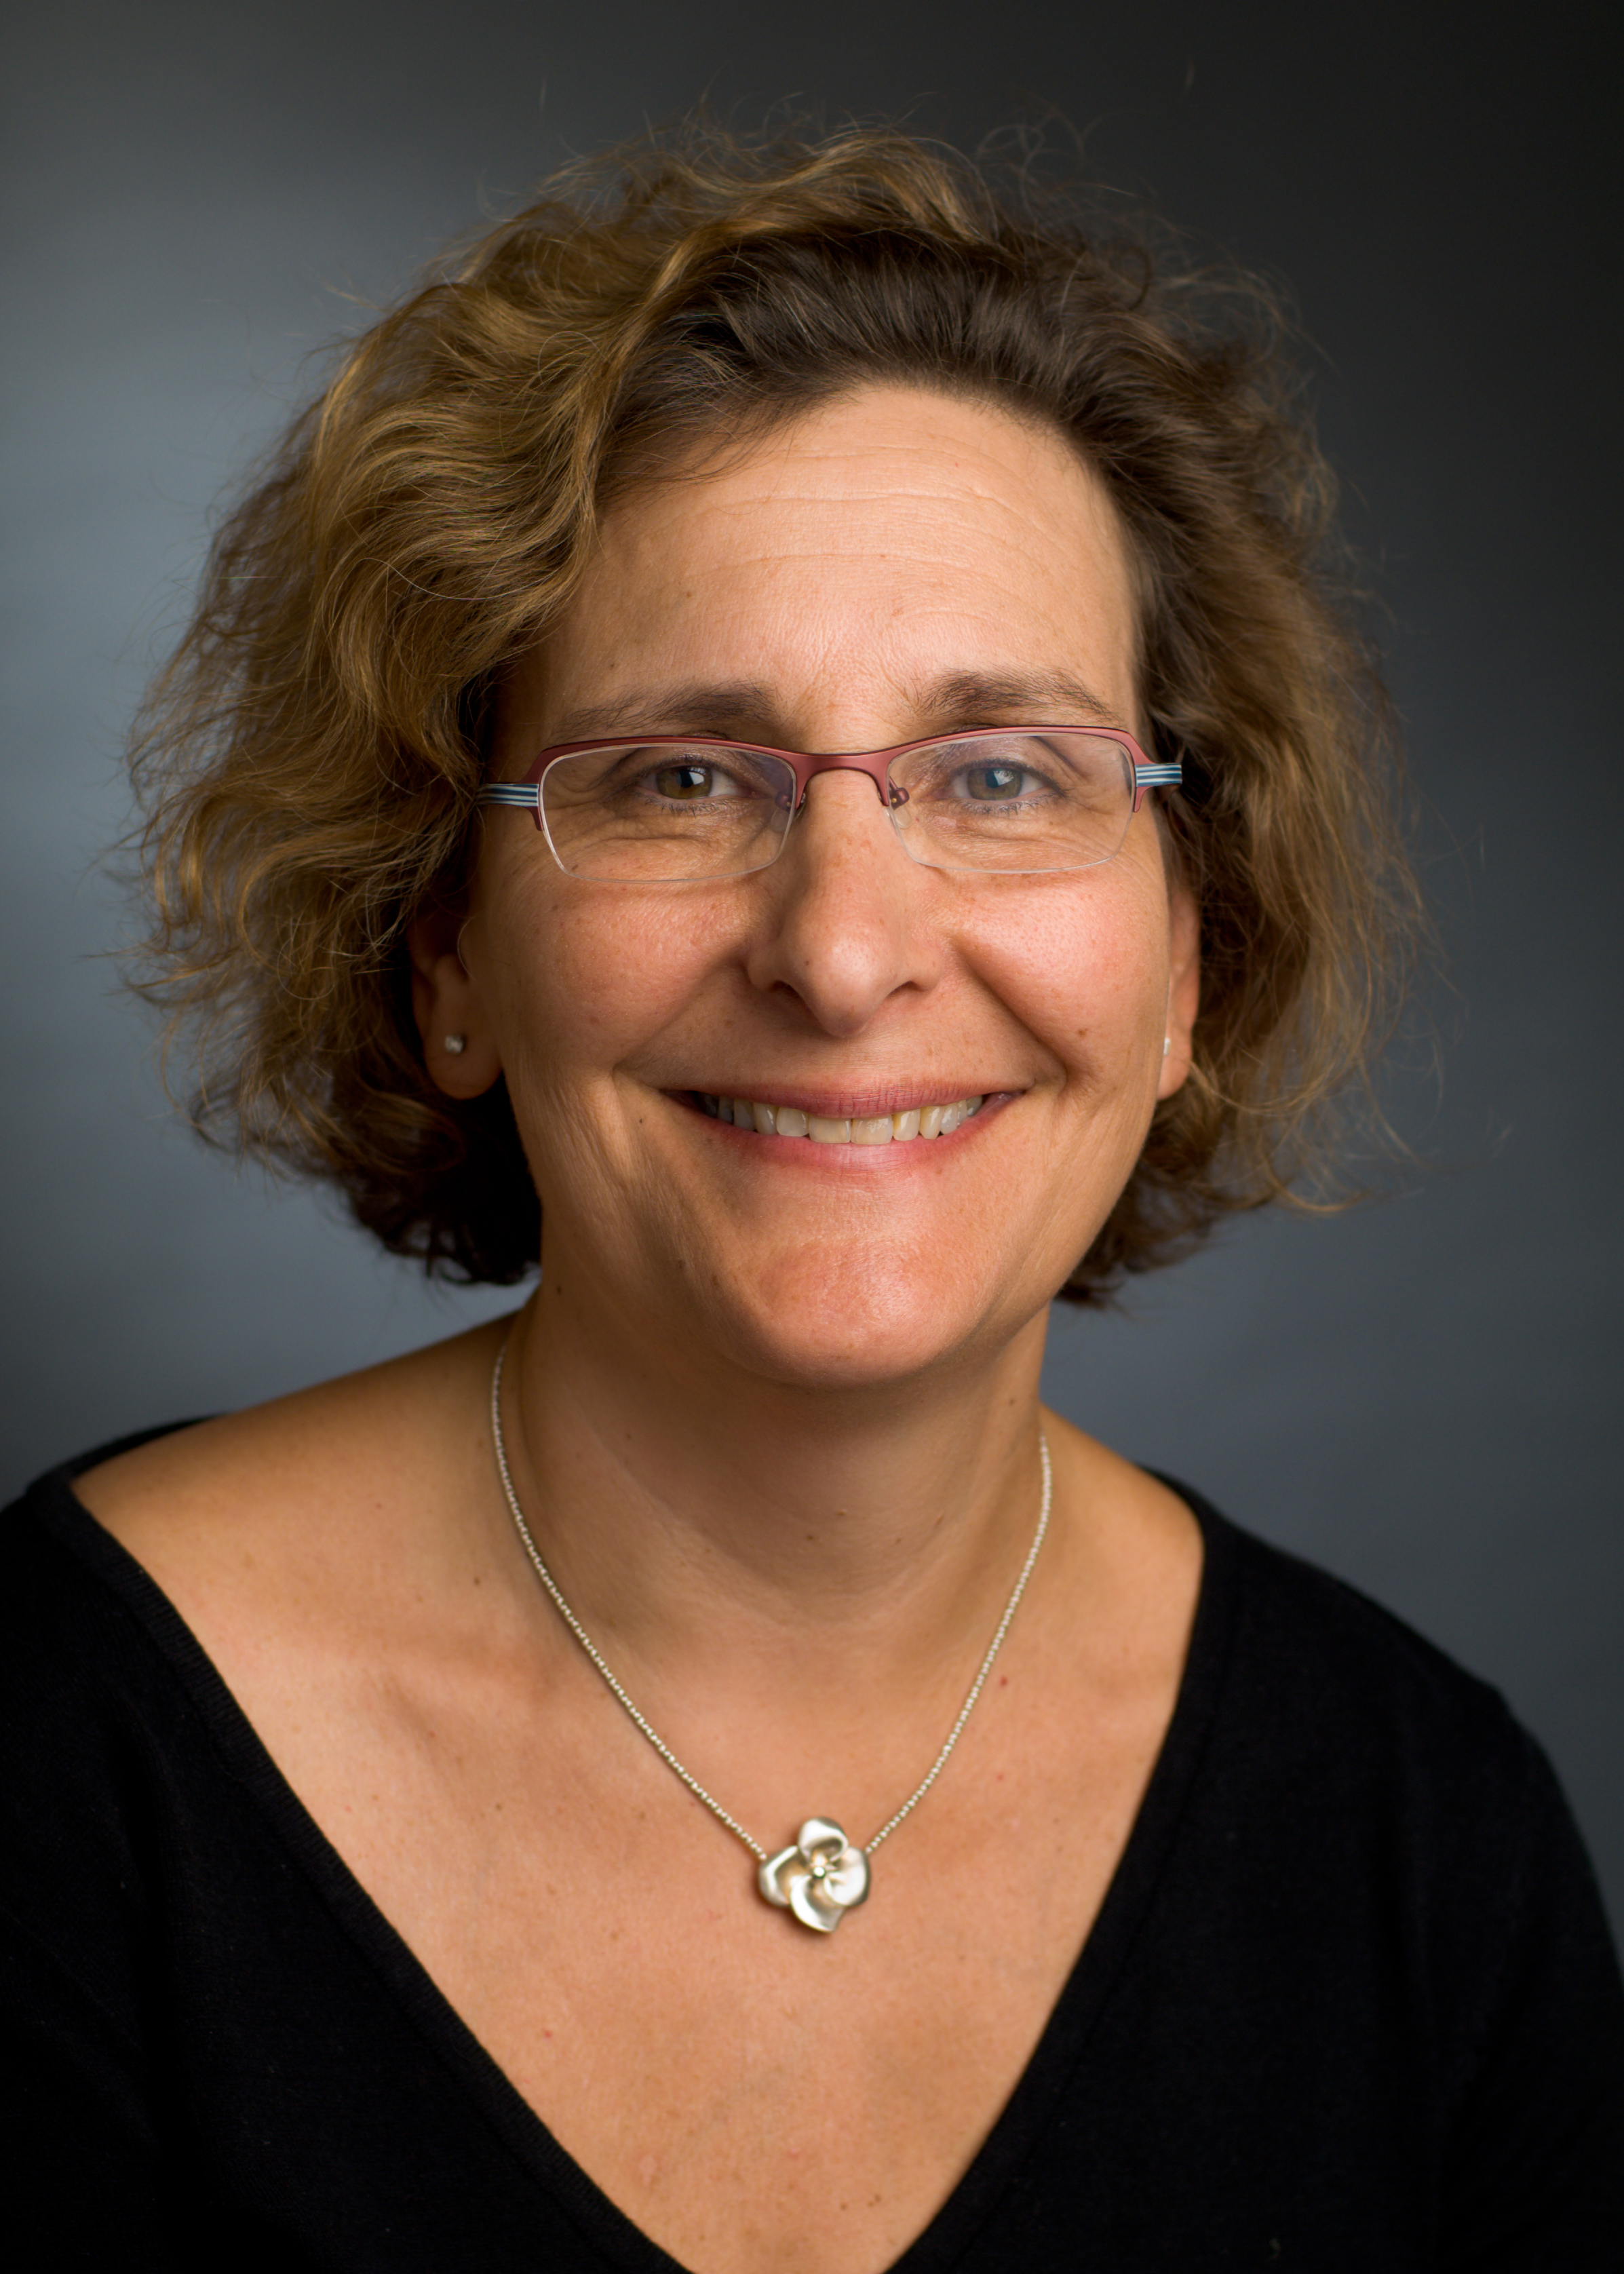 Lisa Diller, pediatric